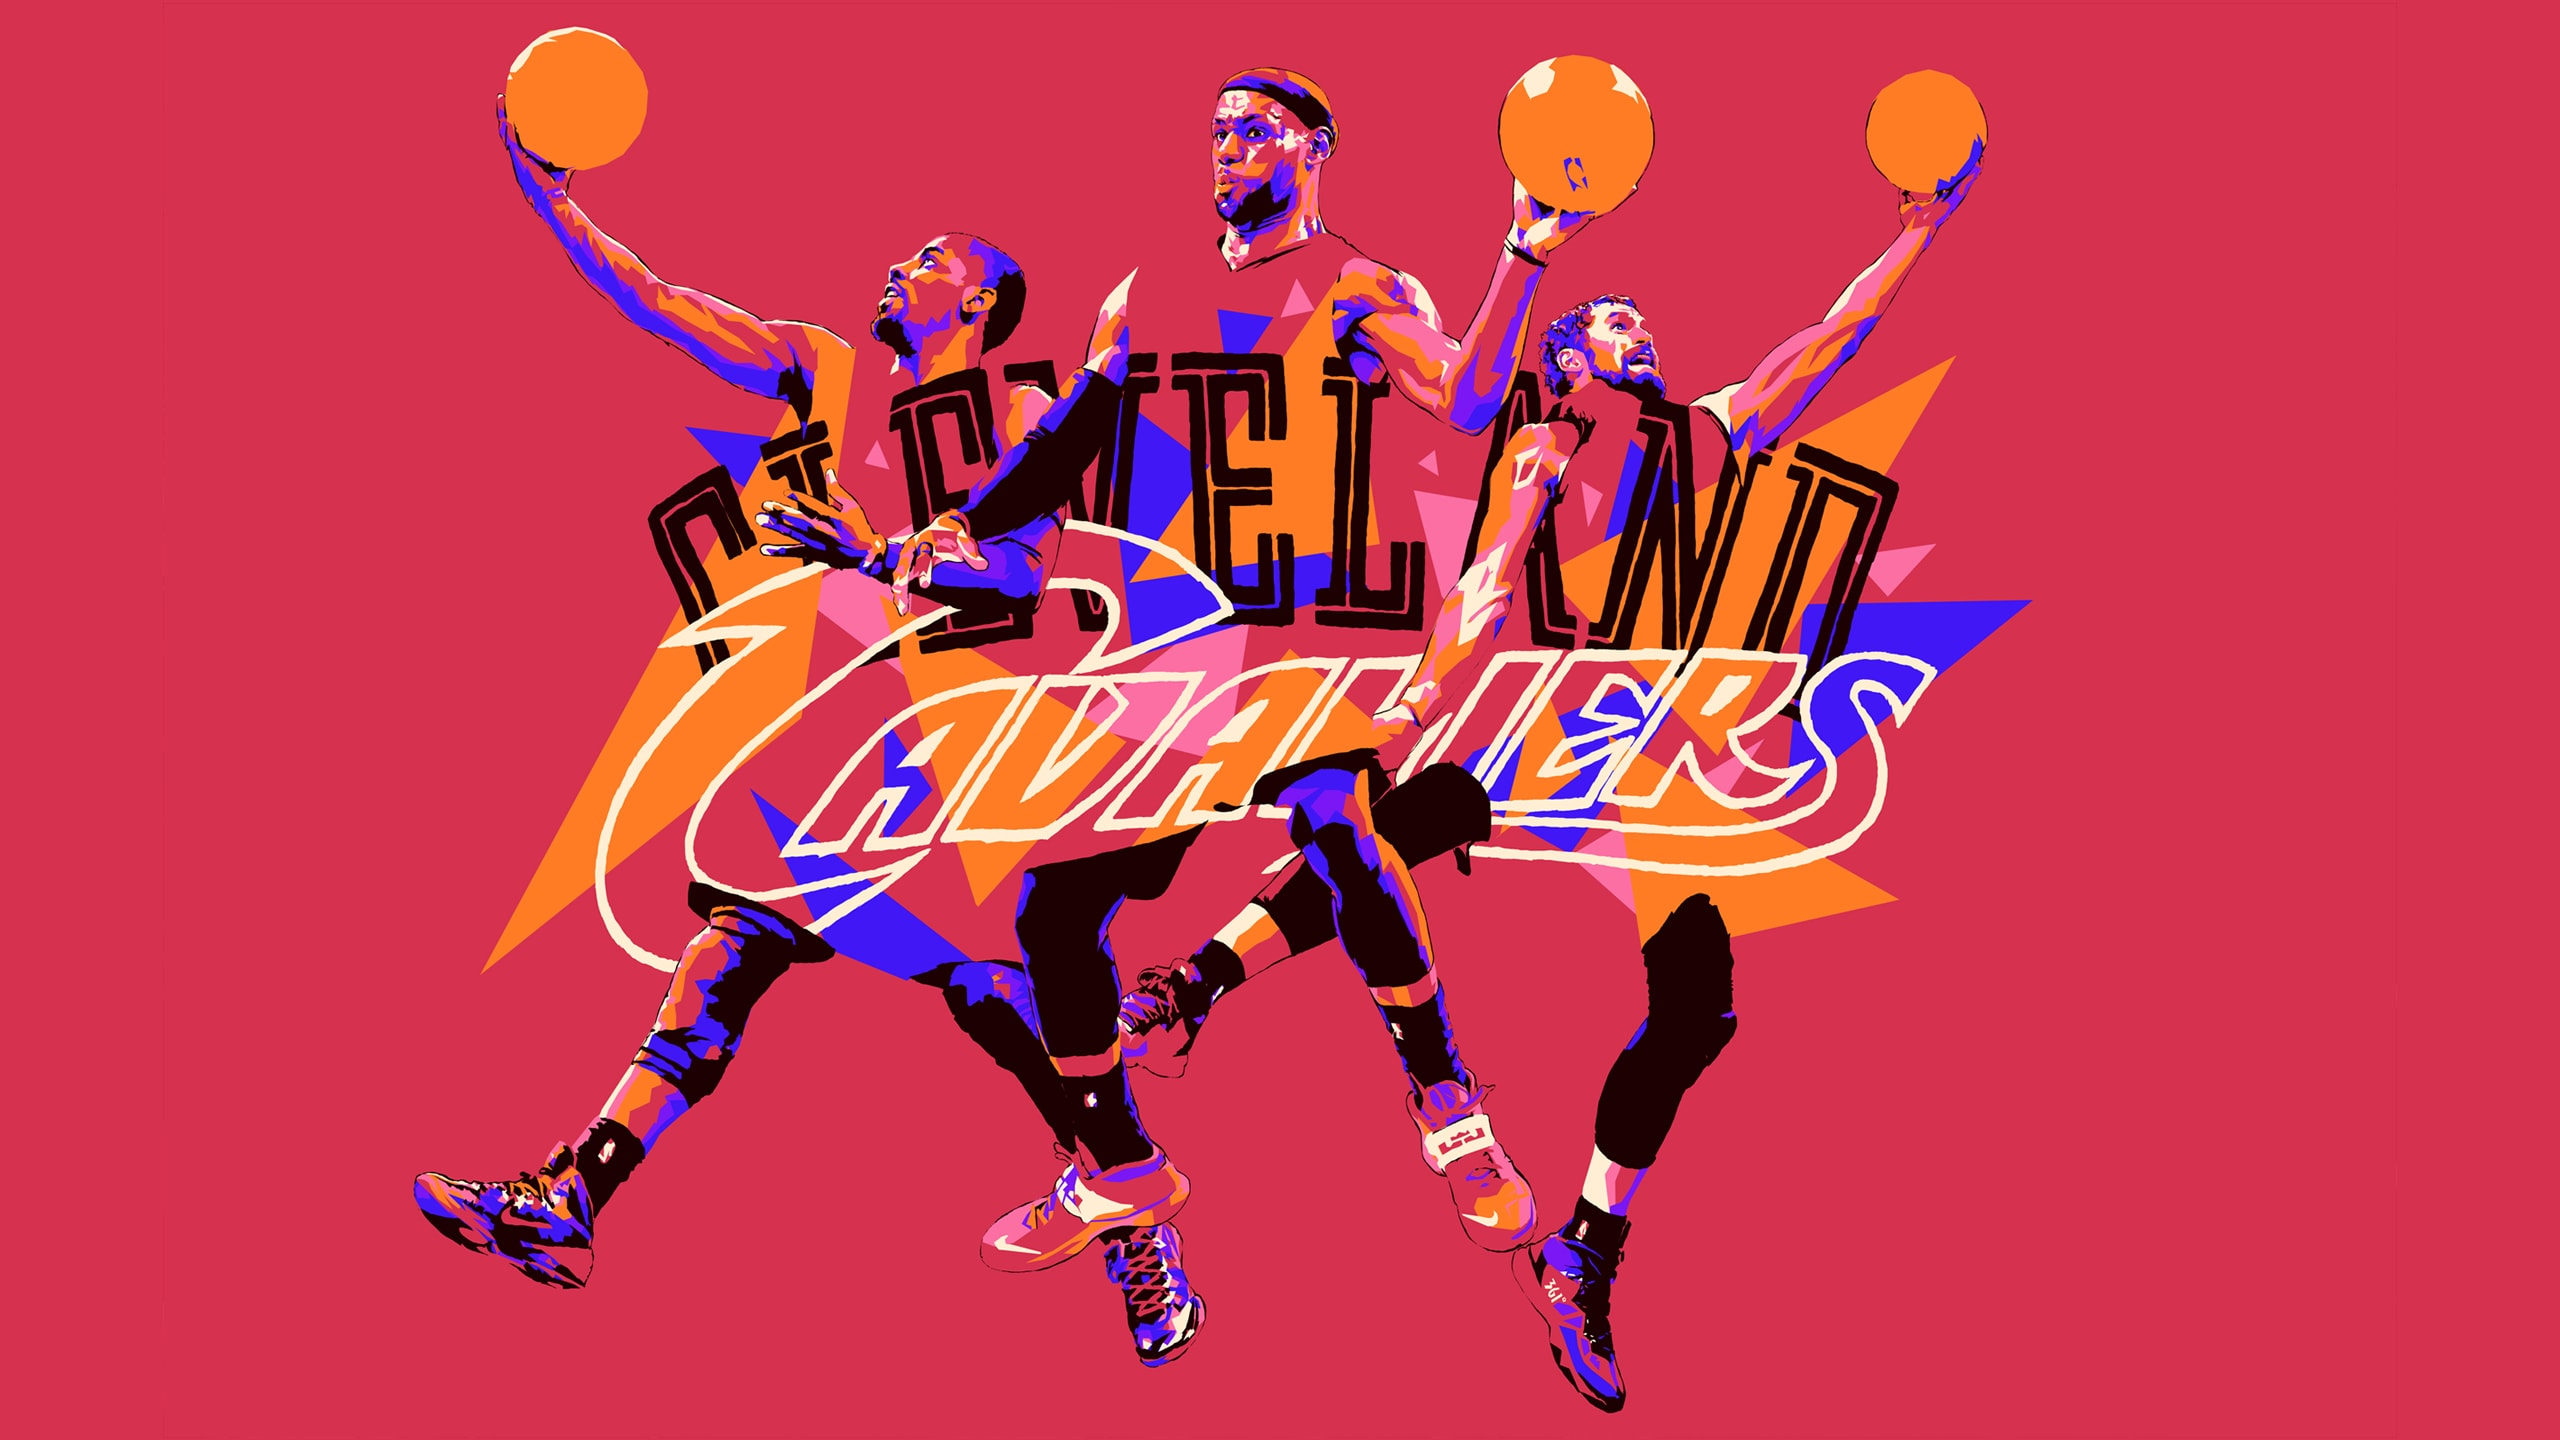 Sick Wallpapers For Iphone 6 Fan Wallpapers Cleveland Cavaliers